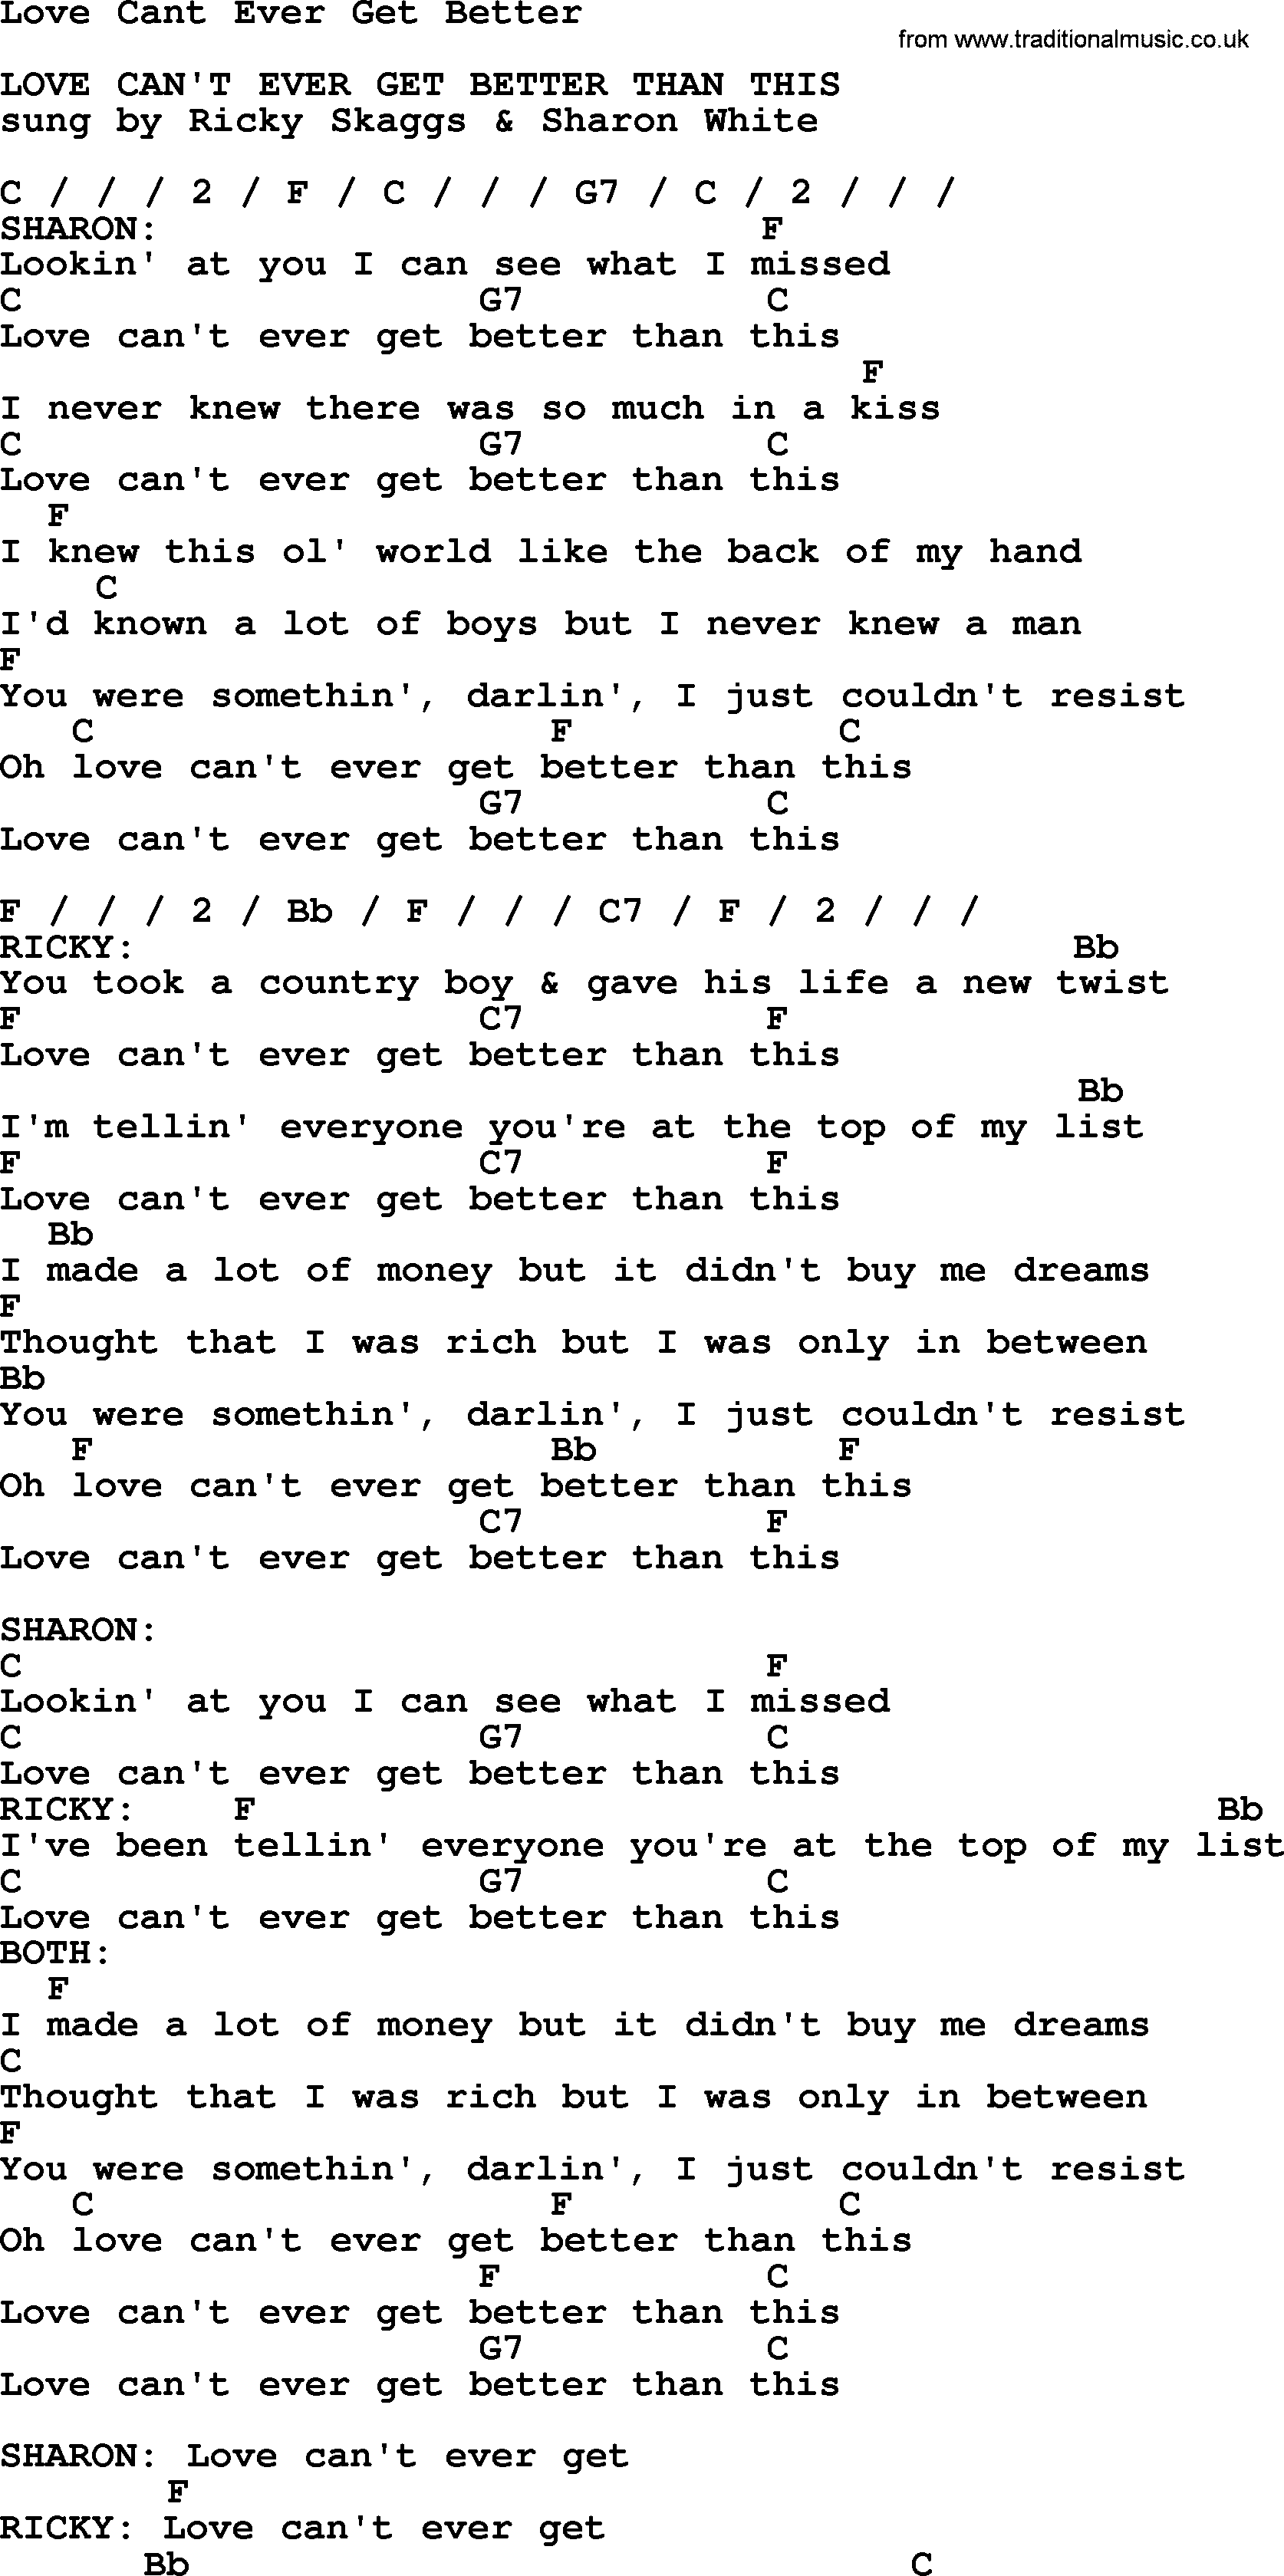 Love Cant Ever Get Better   Bluegrass lyrics with chords